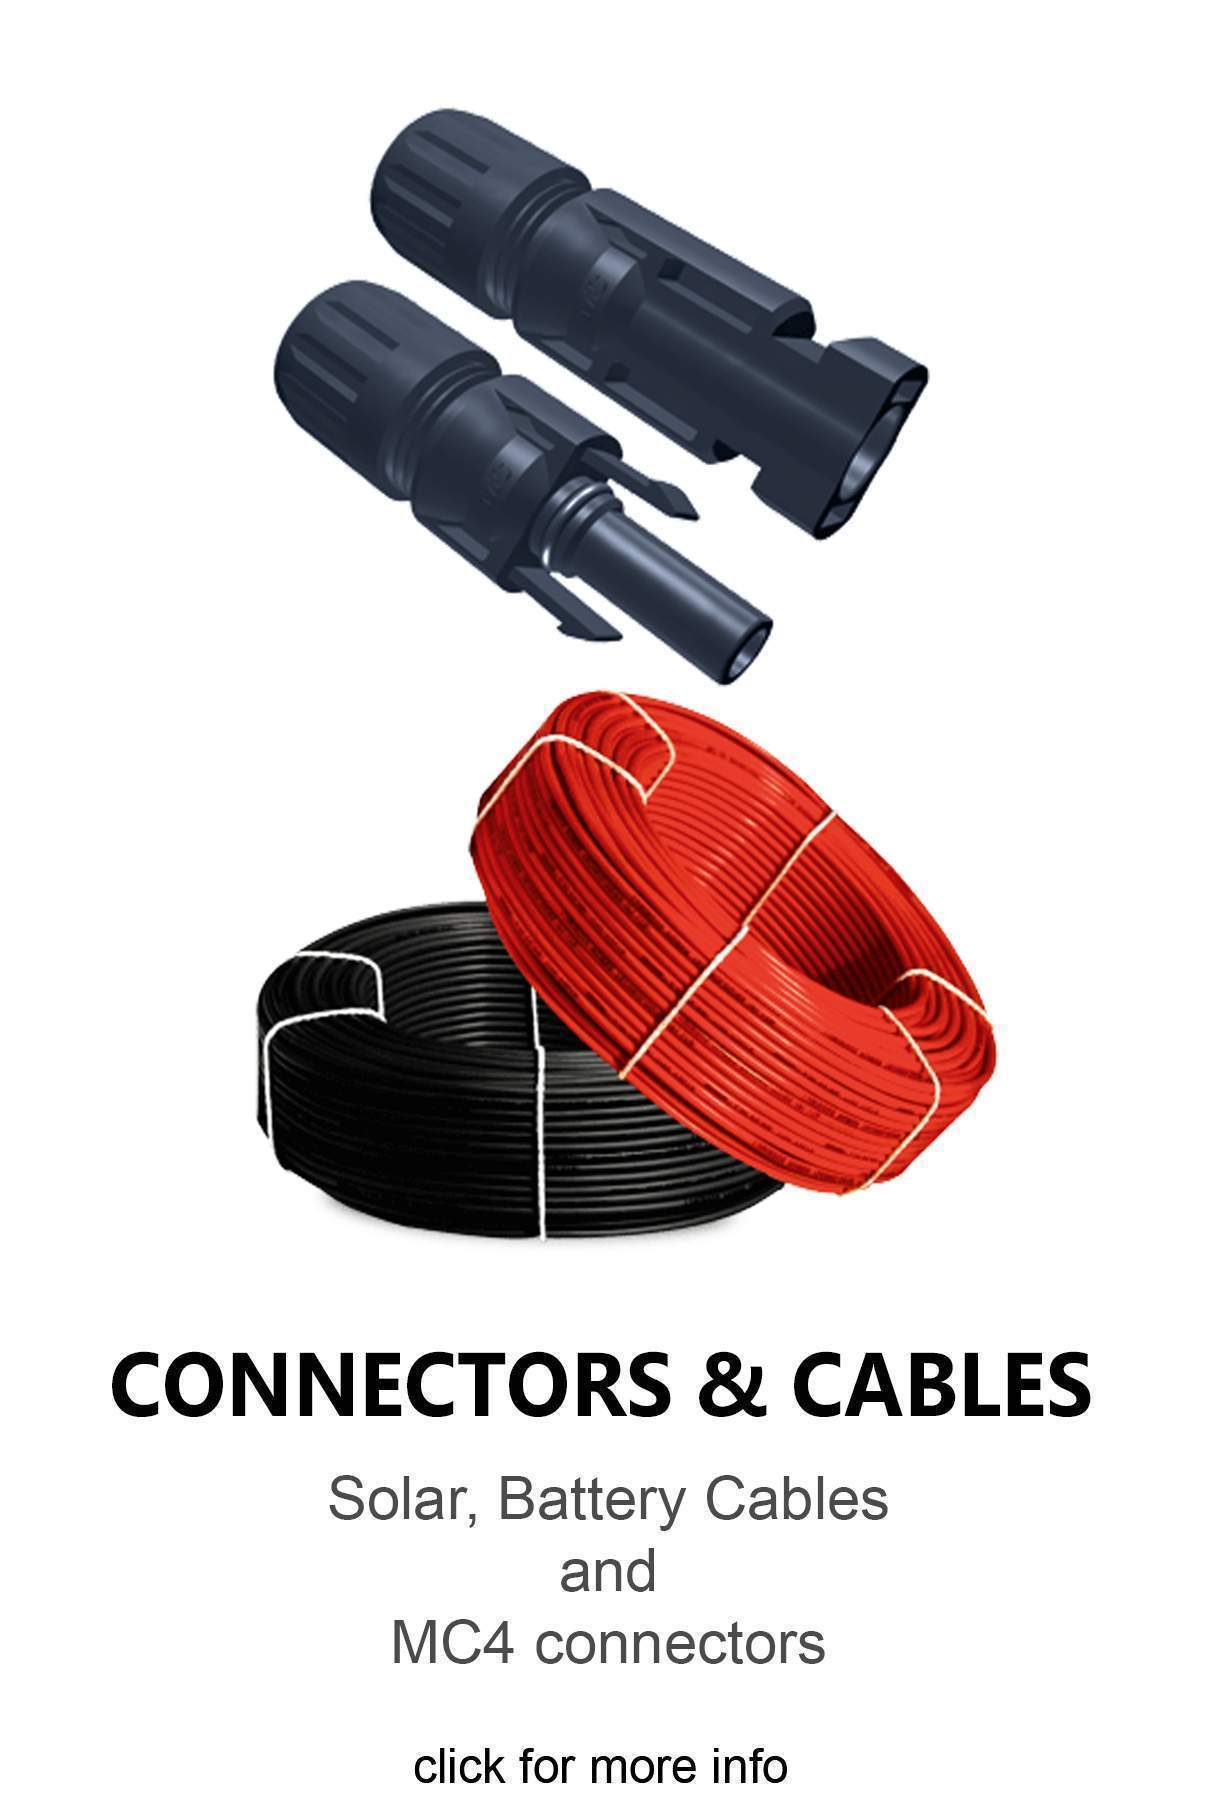 mc4 connectors, solar wire, battery cables South Africa